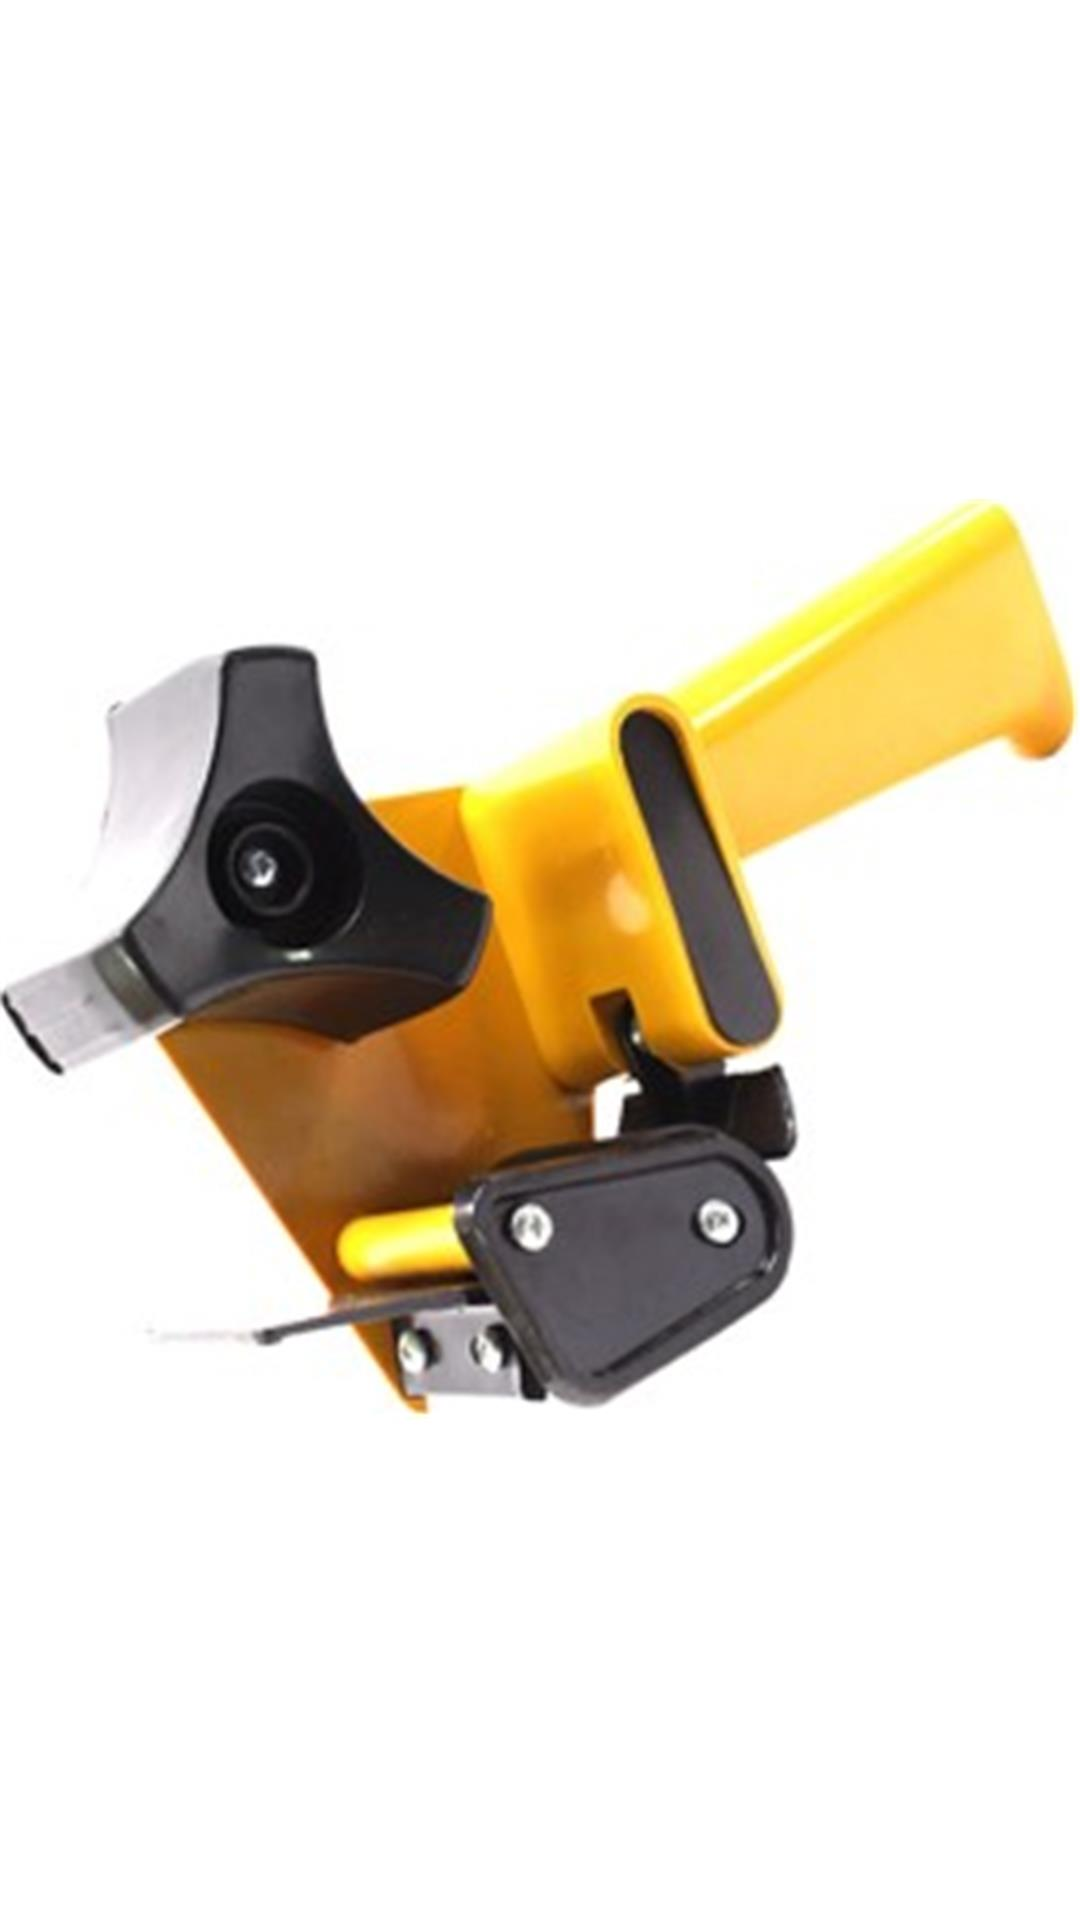 2 Inch Hand Held Tape Dispenser